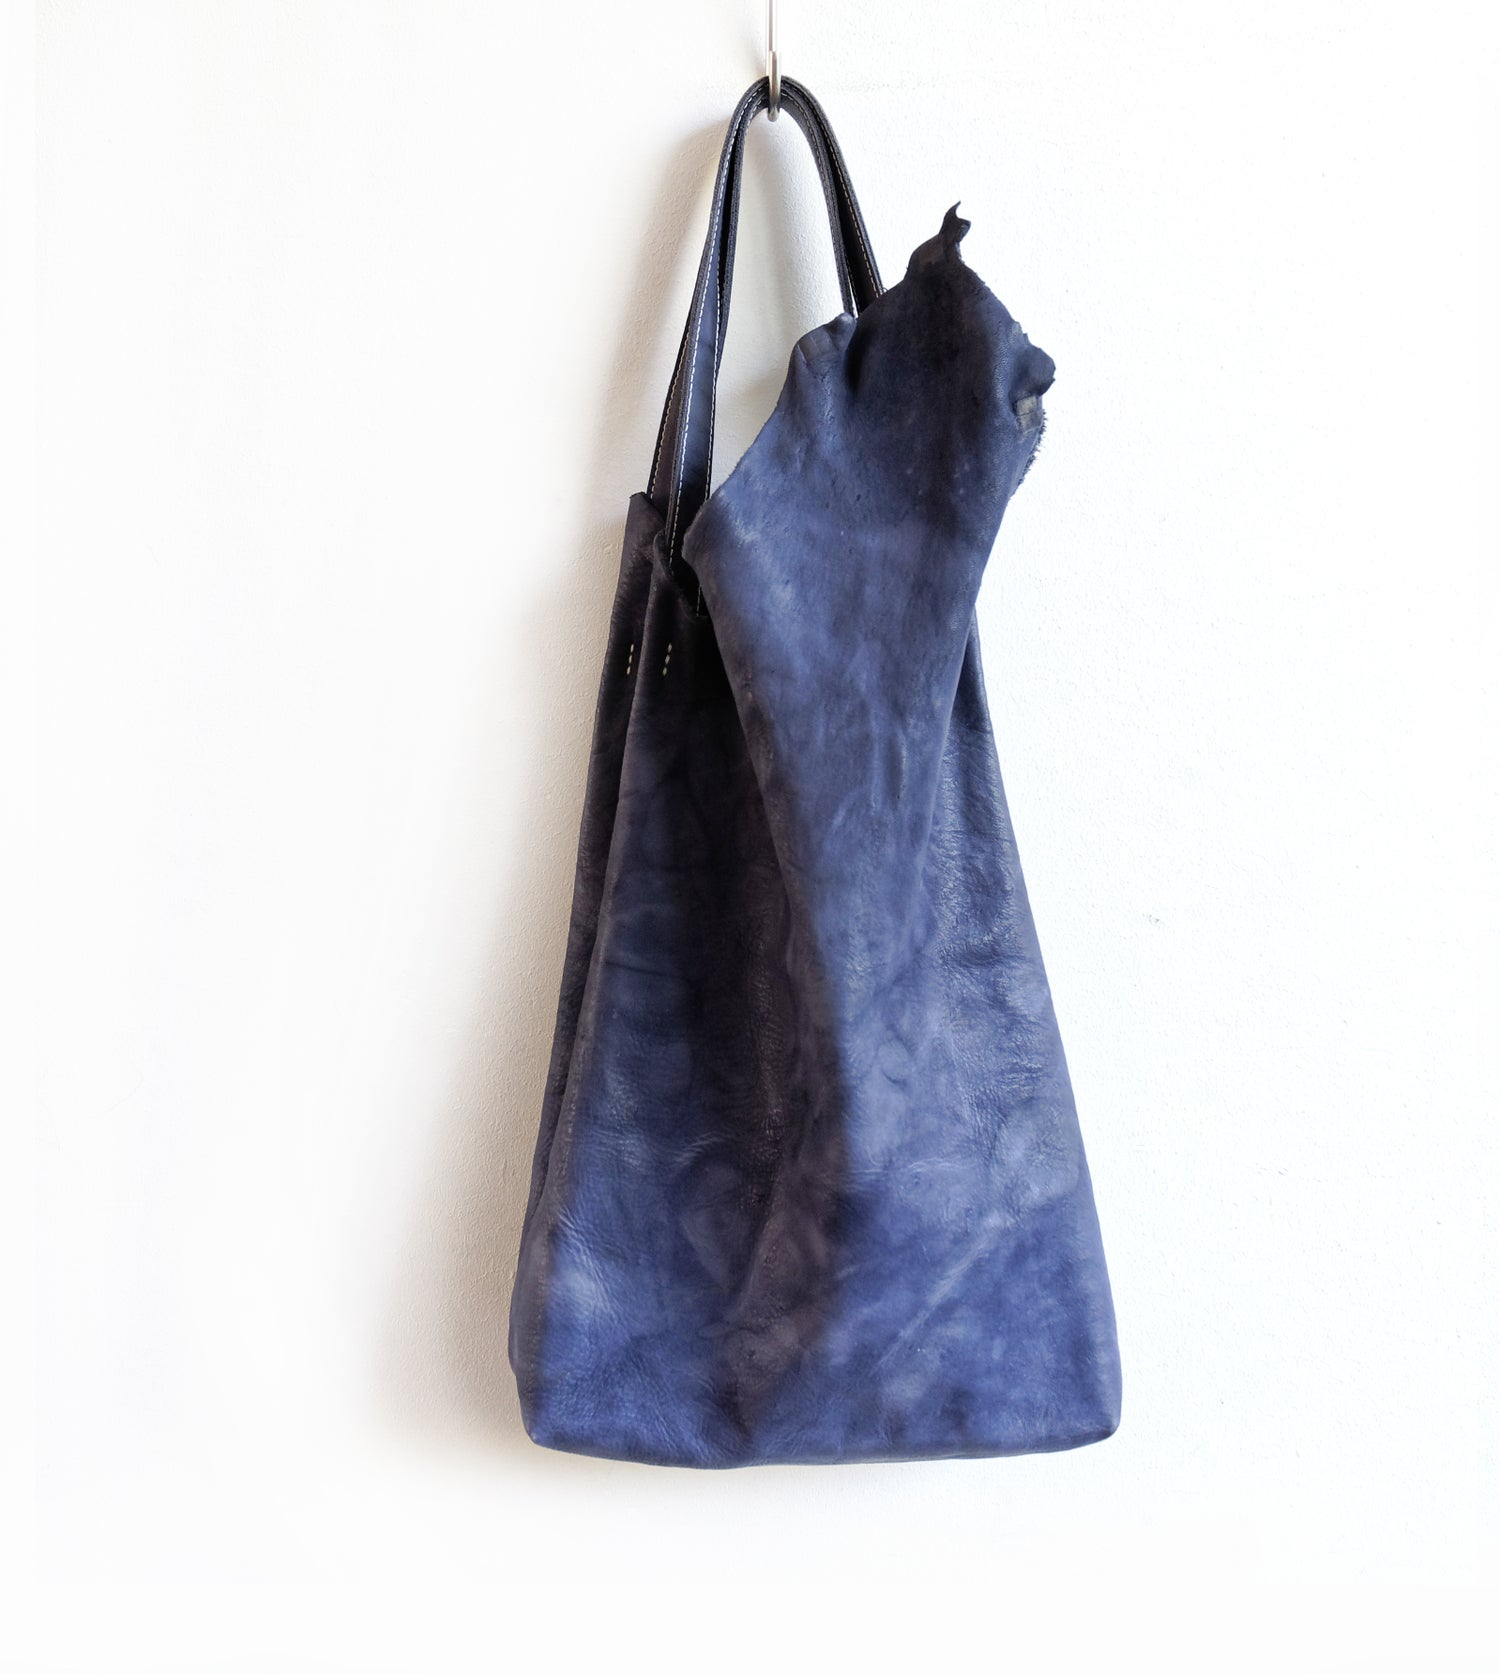 Image of De Blauwe Tulp - The Blue Tulip - Leather Shopper